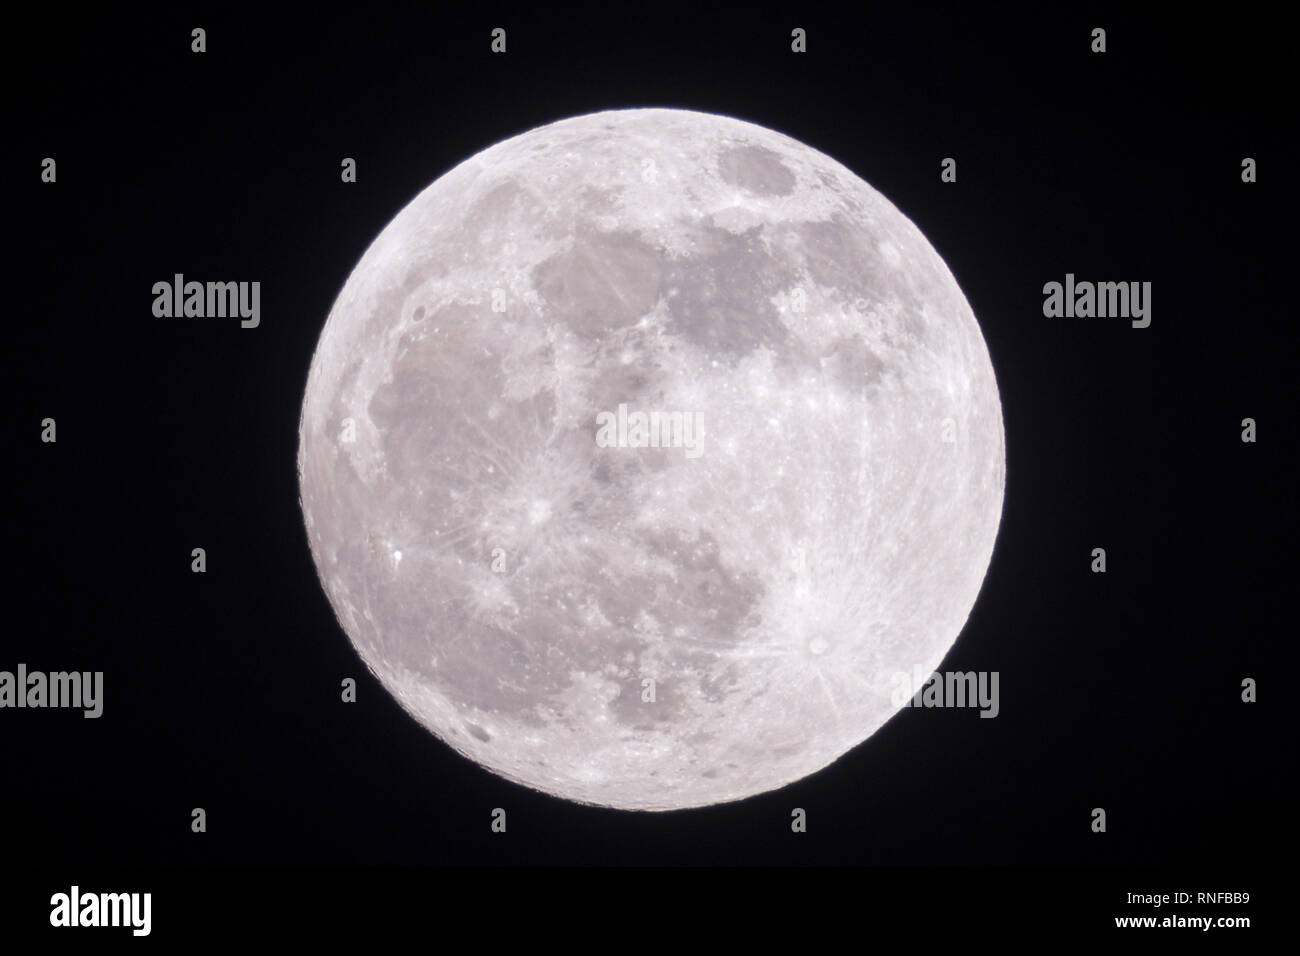 Full moon, fullmoon is shining bright , silver light, close, clear dark winter night, looks close, supermoon, detailed view, January, 2019. - Stock Image